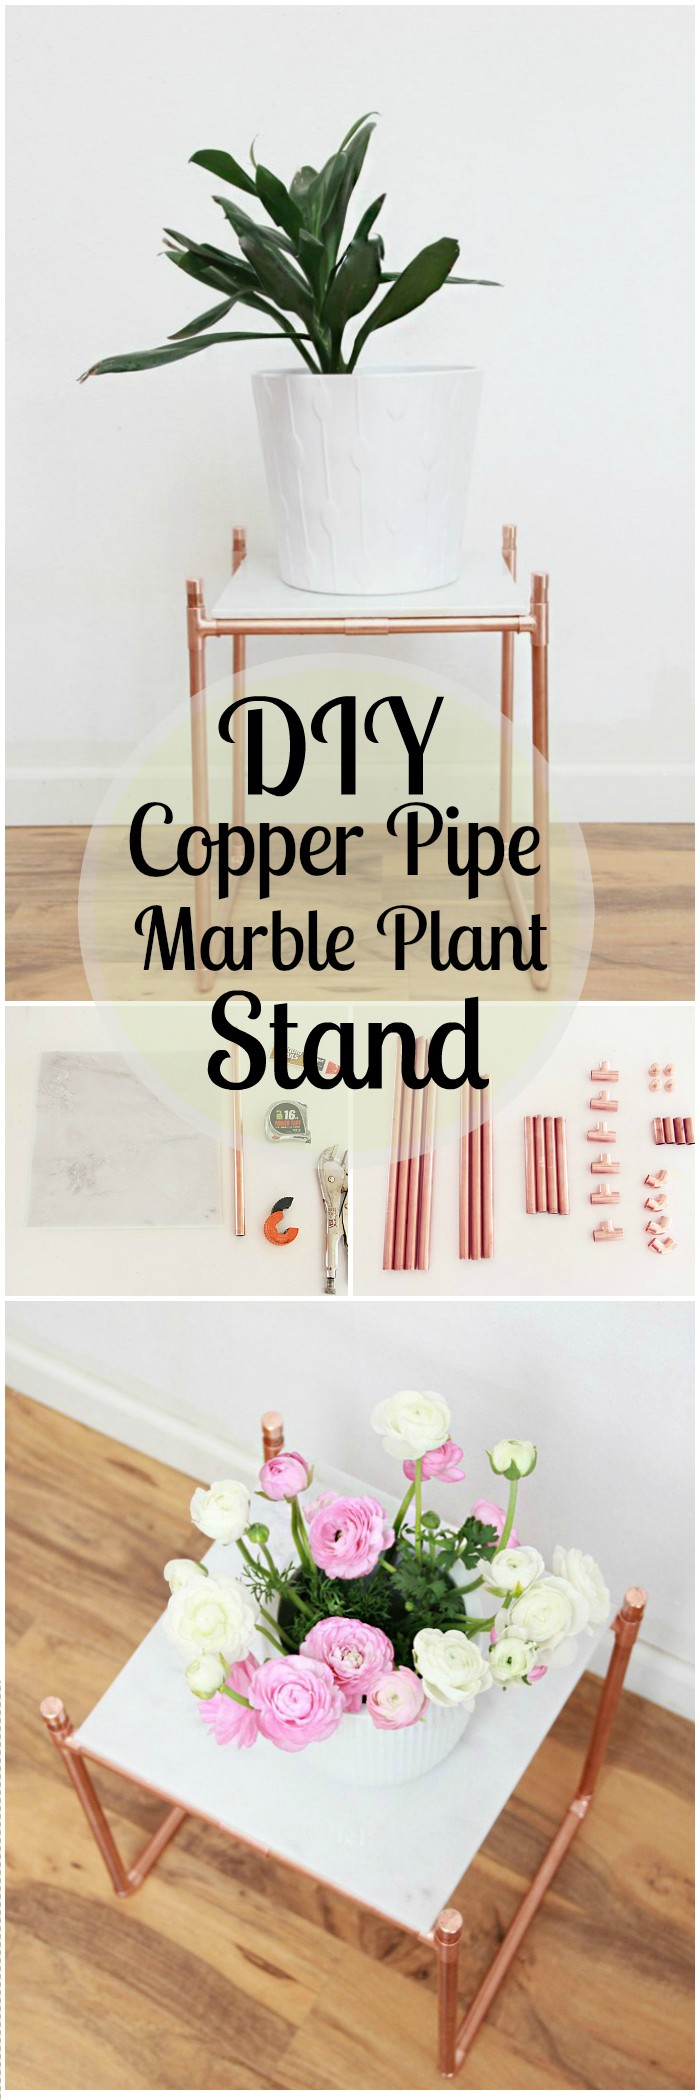 DIY Projects For The Home Decorations DIY Copper Pipe Marble Plant Stand